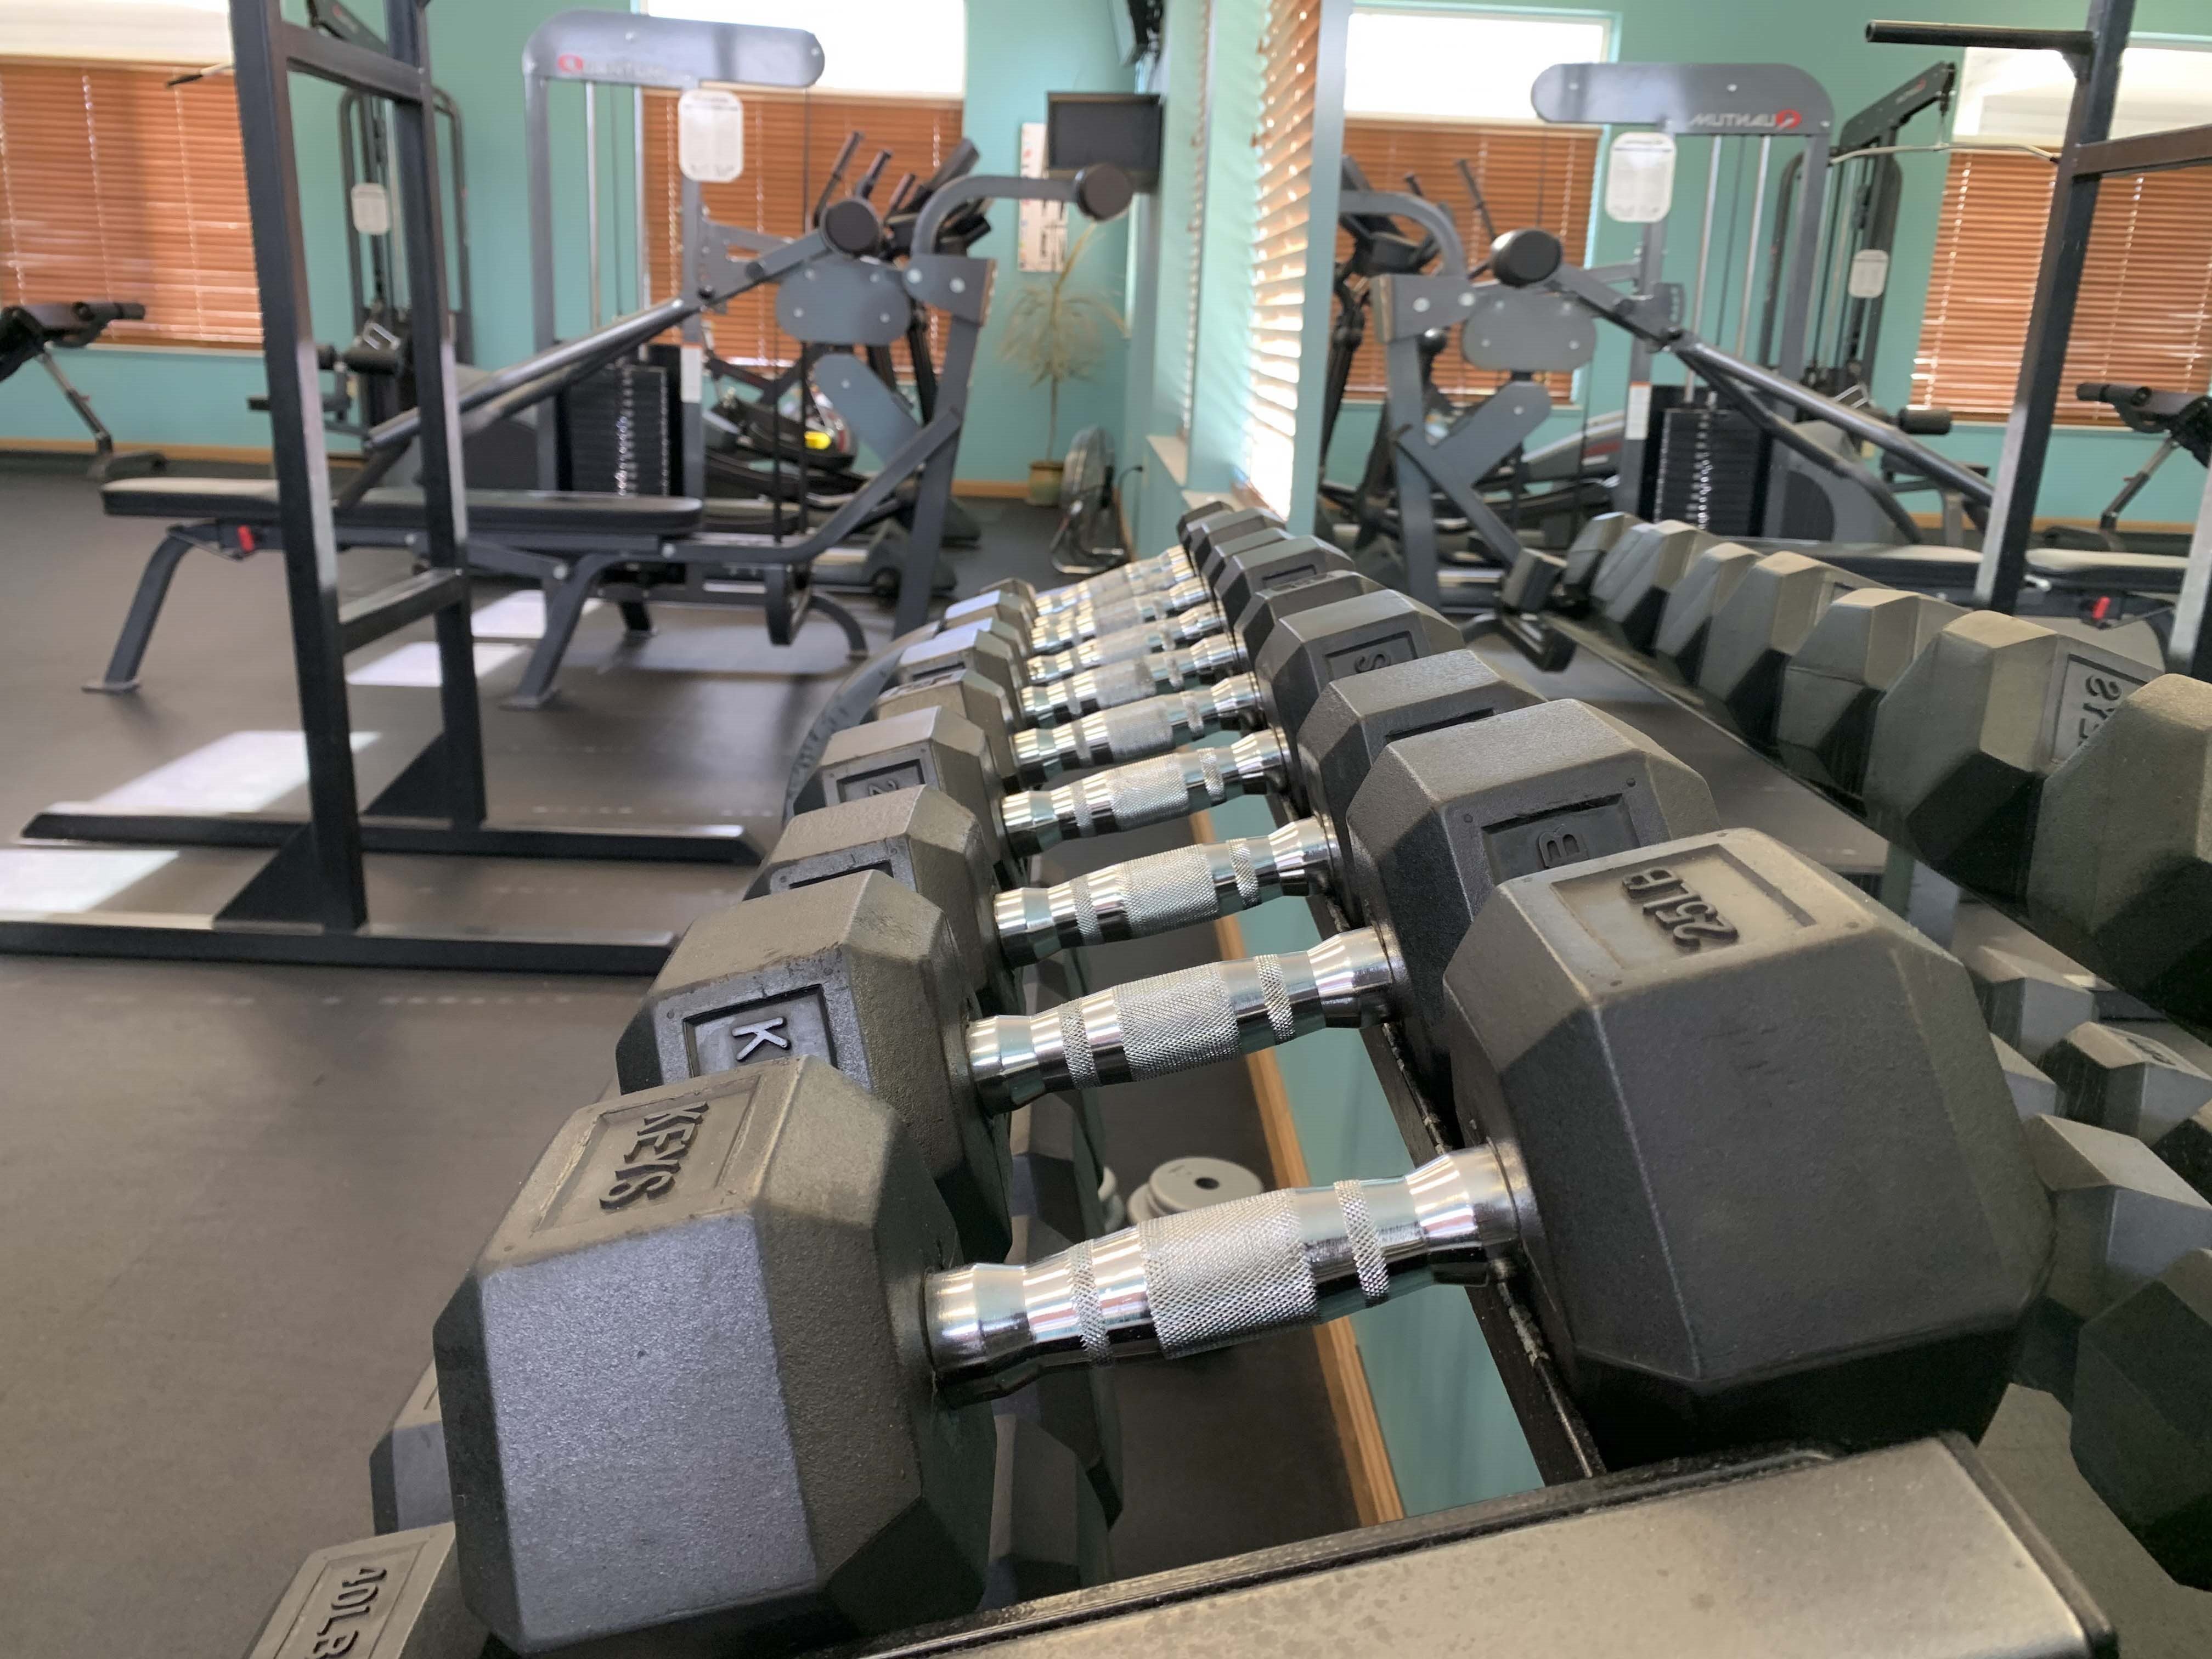 Free weights are a great option to help you stay active and fit in the exercise room at Stone Ridge Estates